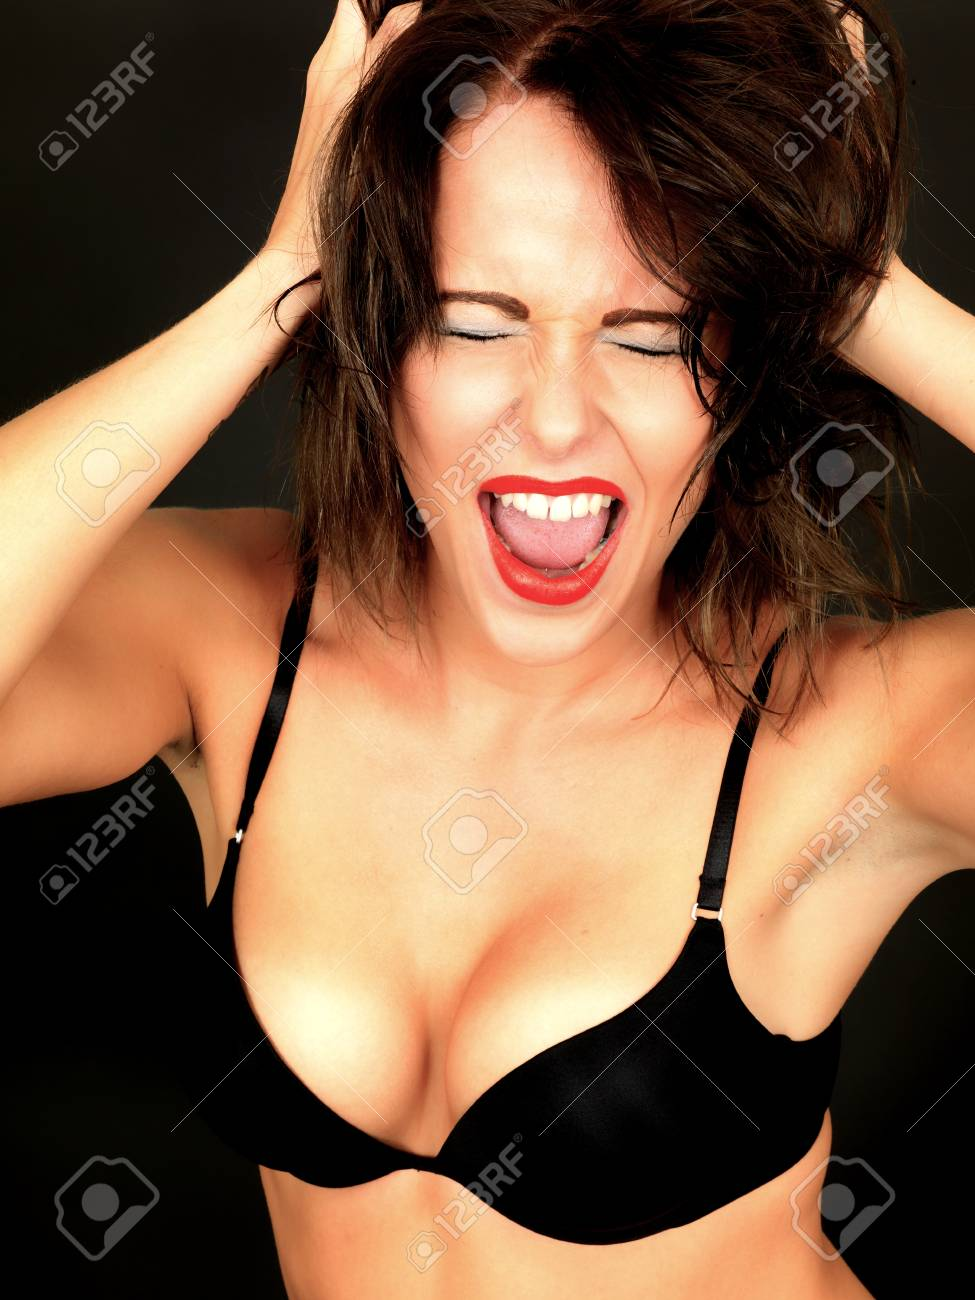 42365d5fc4831 Sexy Young Woman Wearing Black Bra Stock Photo - 30544599